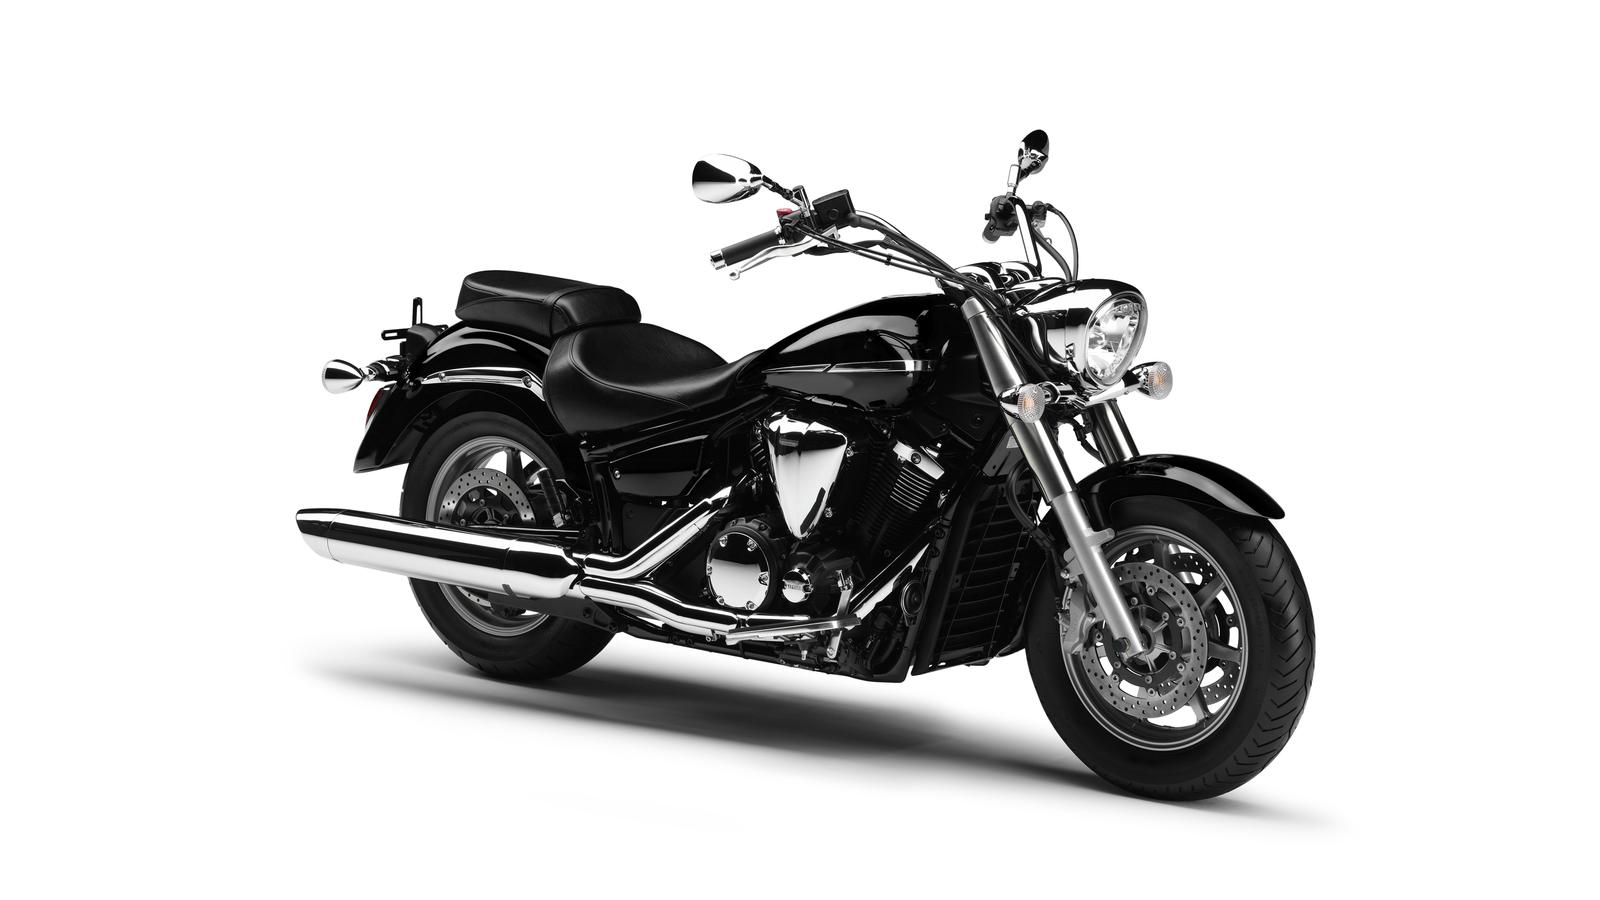 YAMAHA XVS 1300 A Midnight Star  2011